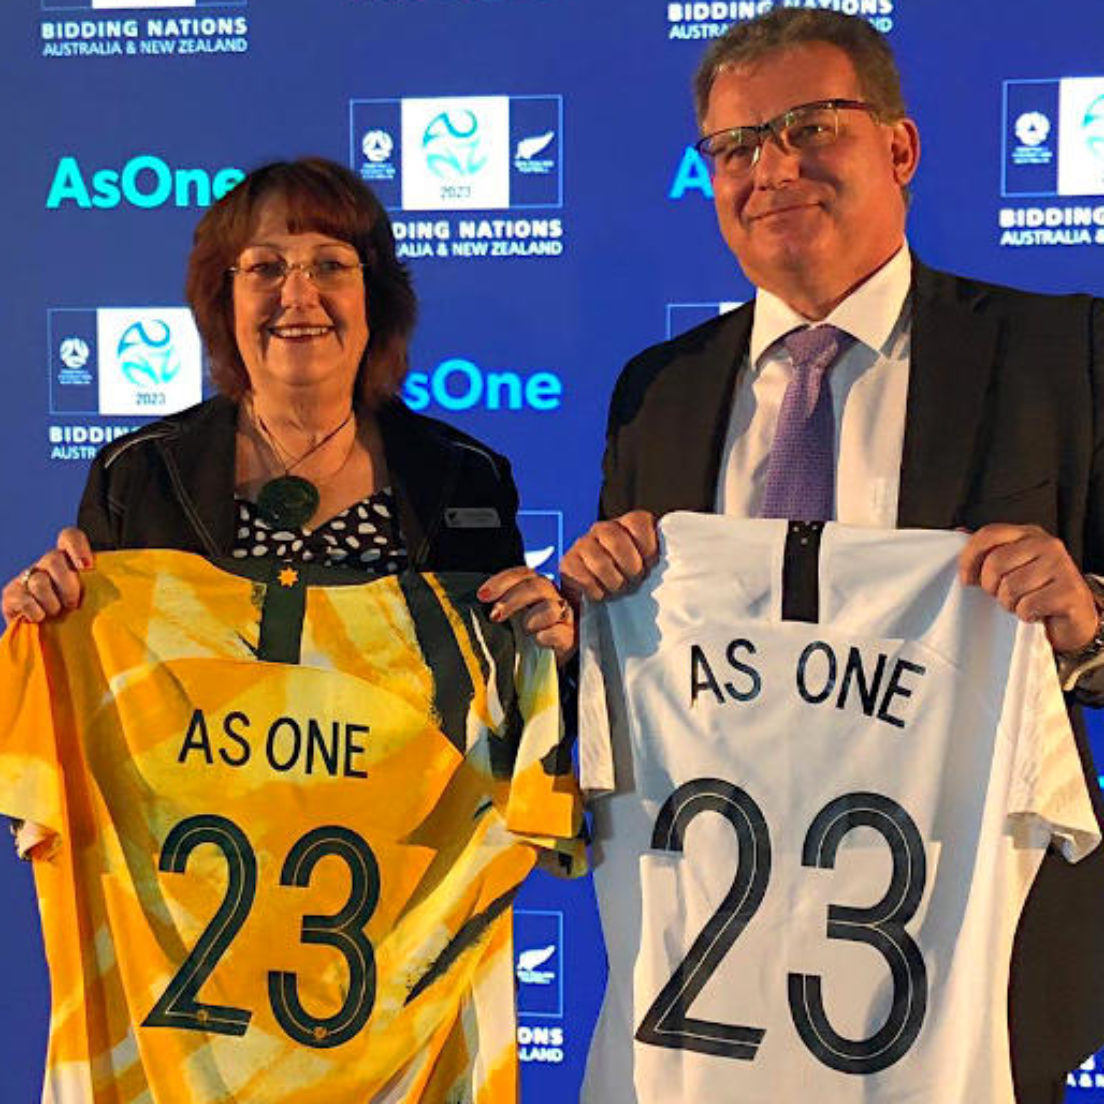 Australia and New Zealand confirm joint bid for 2023 Women's World Cup